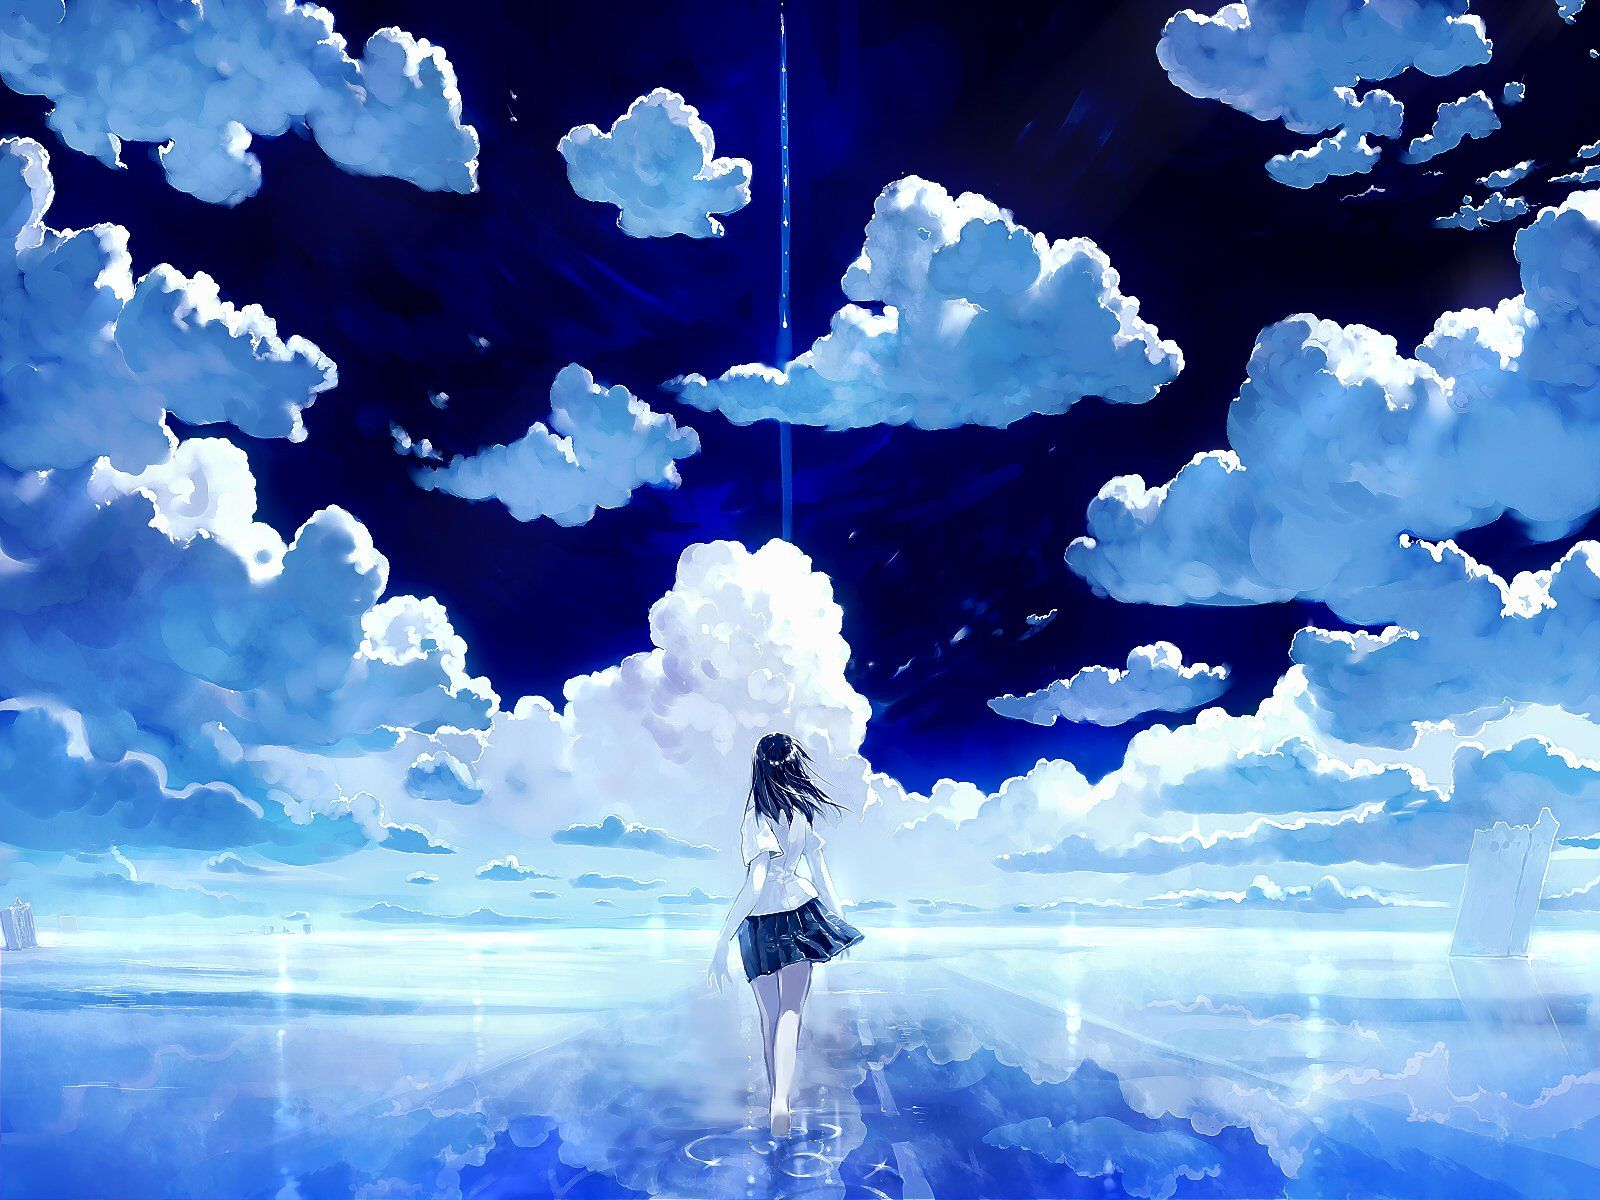 Sky Cloud Anime Wallpaper Wide Photos 99505 1600x1200 px